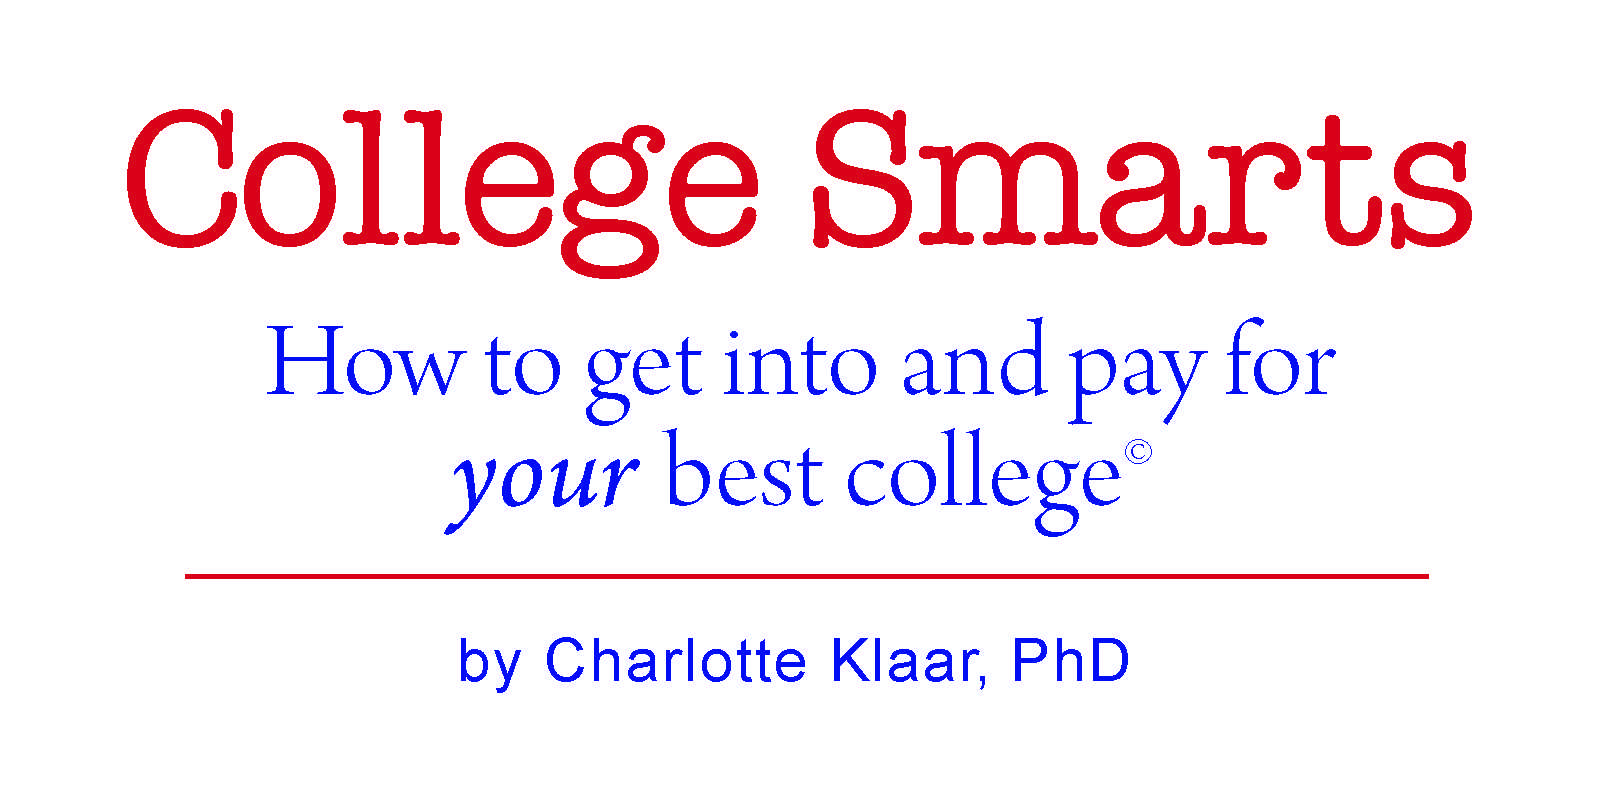 College Smarts is Ideal for Budget-Minded Students